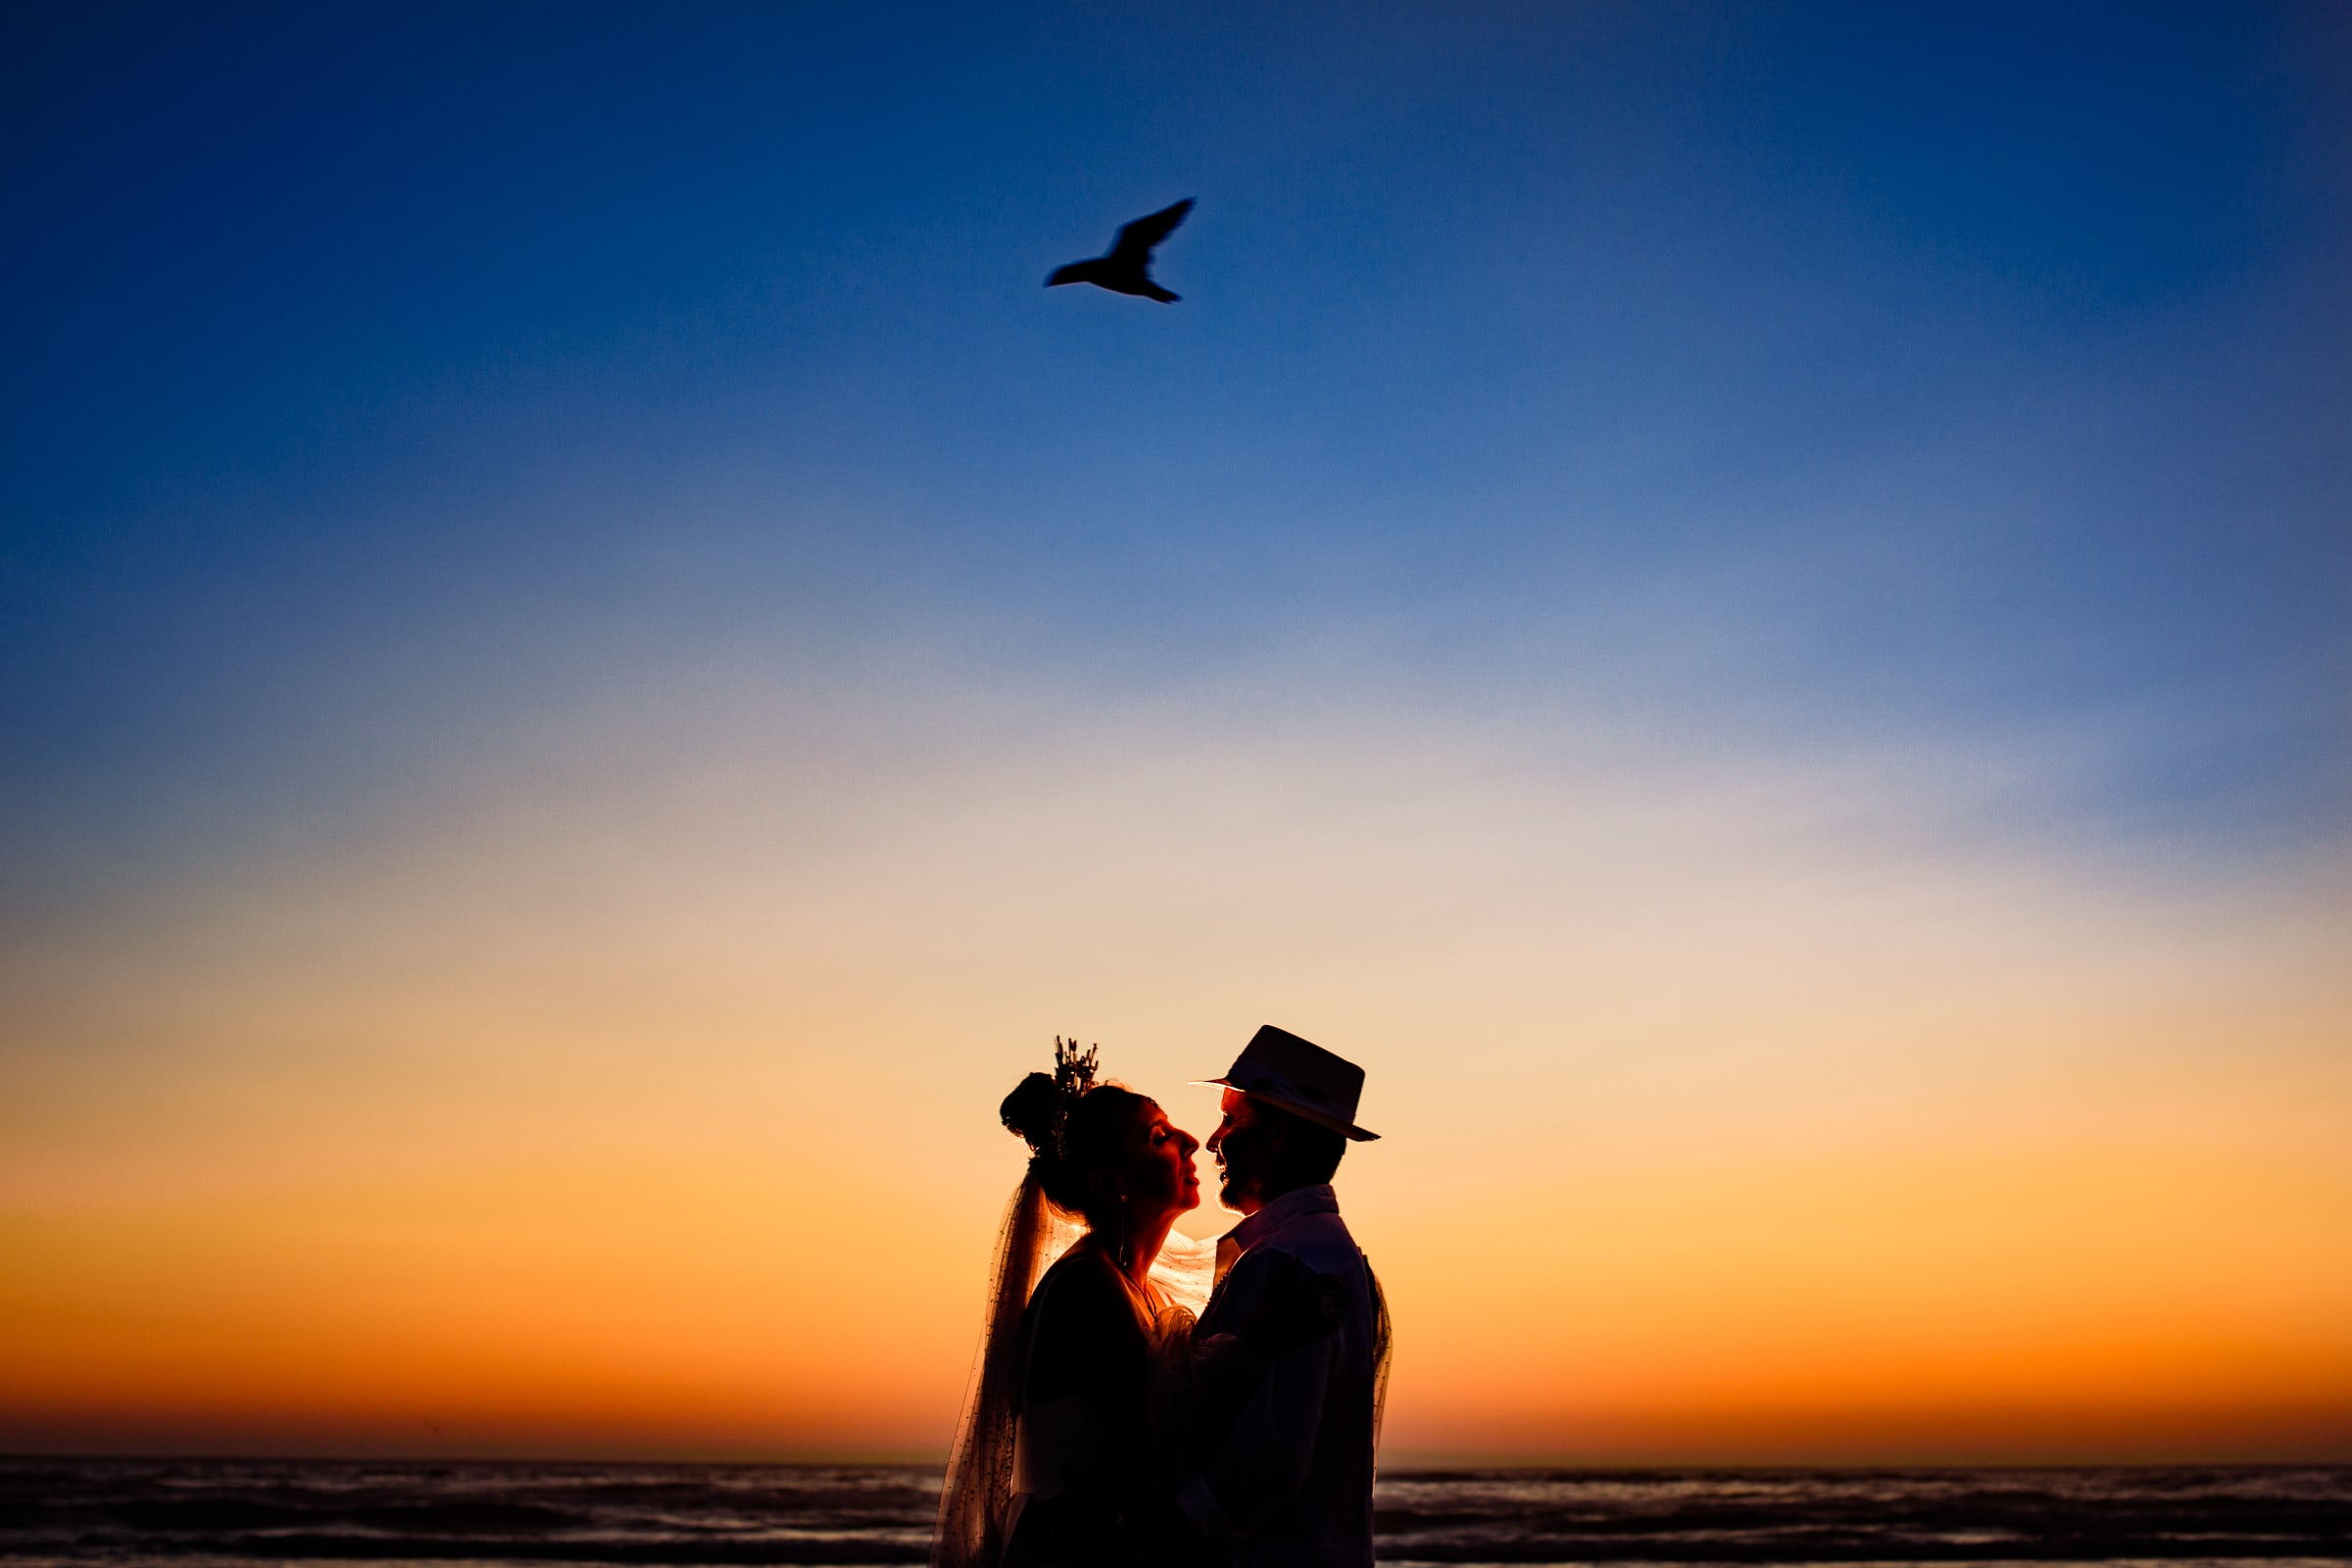 Gorgeous sunset Cannon Beach wedding portrait of bride and groom near Haystack Rock with bird flying over head